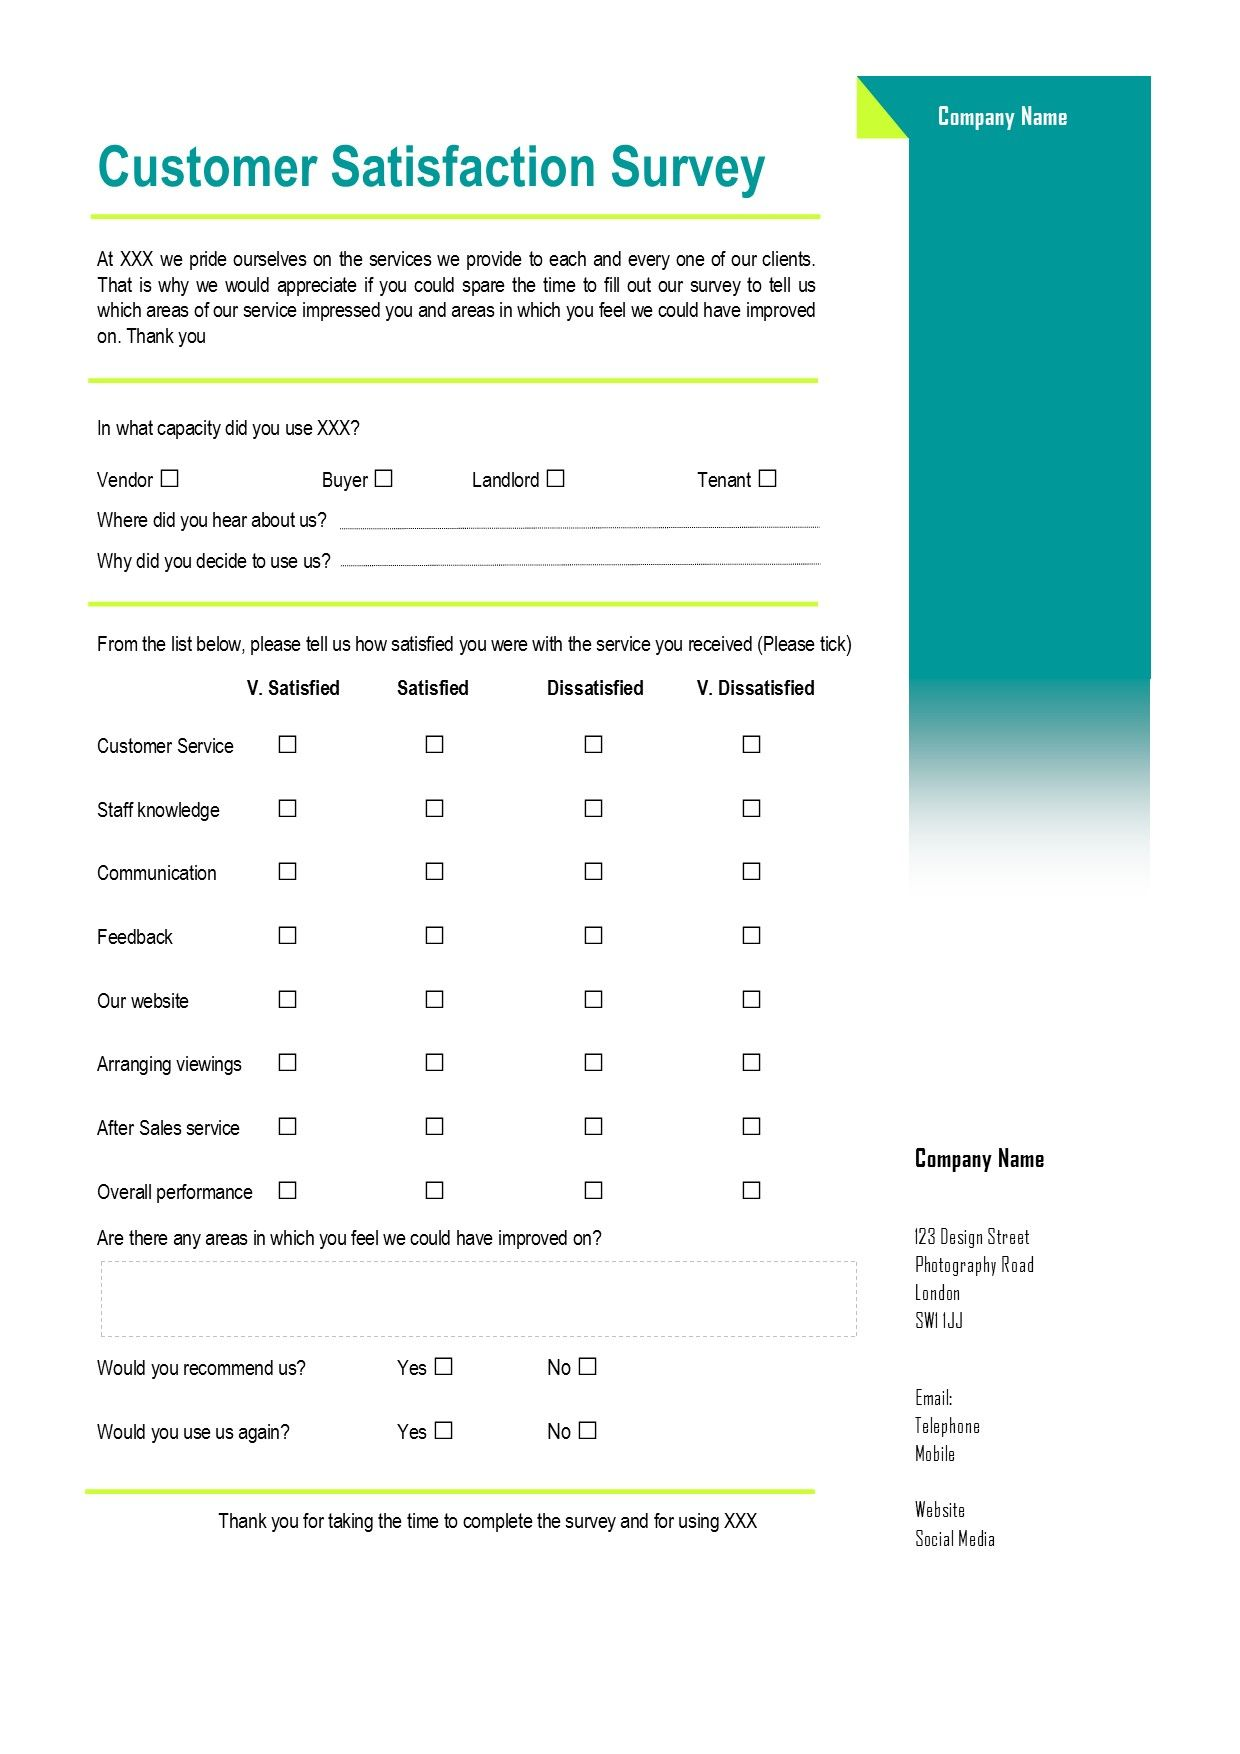 Customer Satisfaction Survey A Virtual Assistant Can Create Forms For Clients To Send To